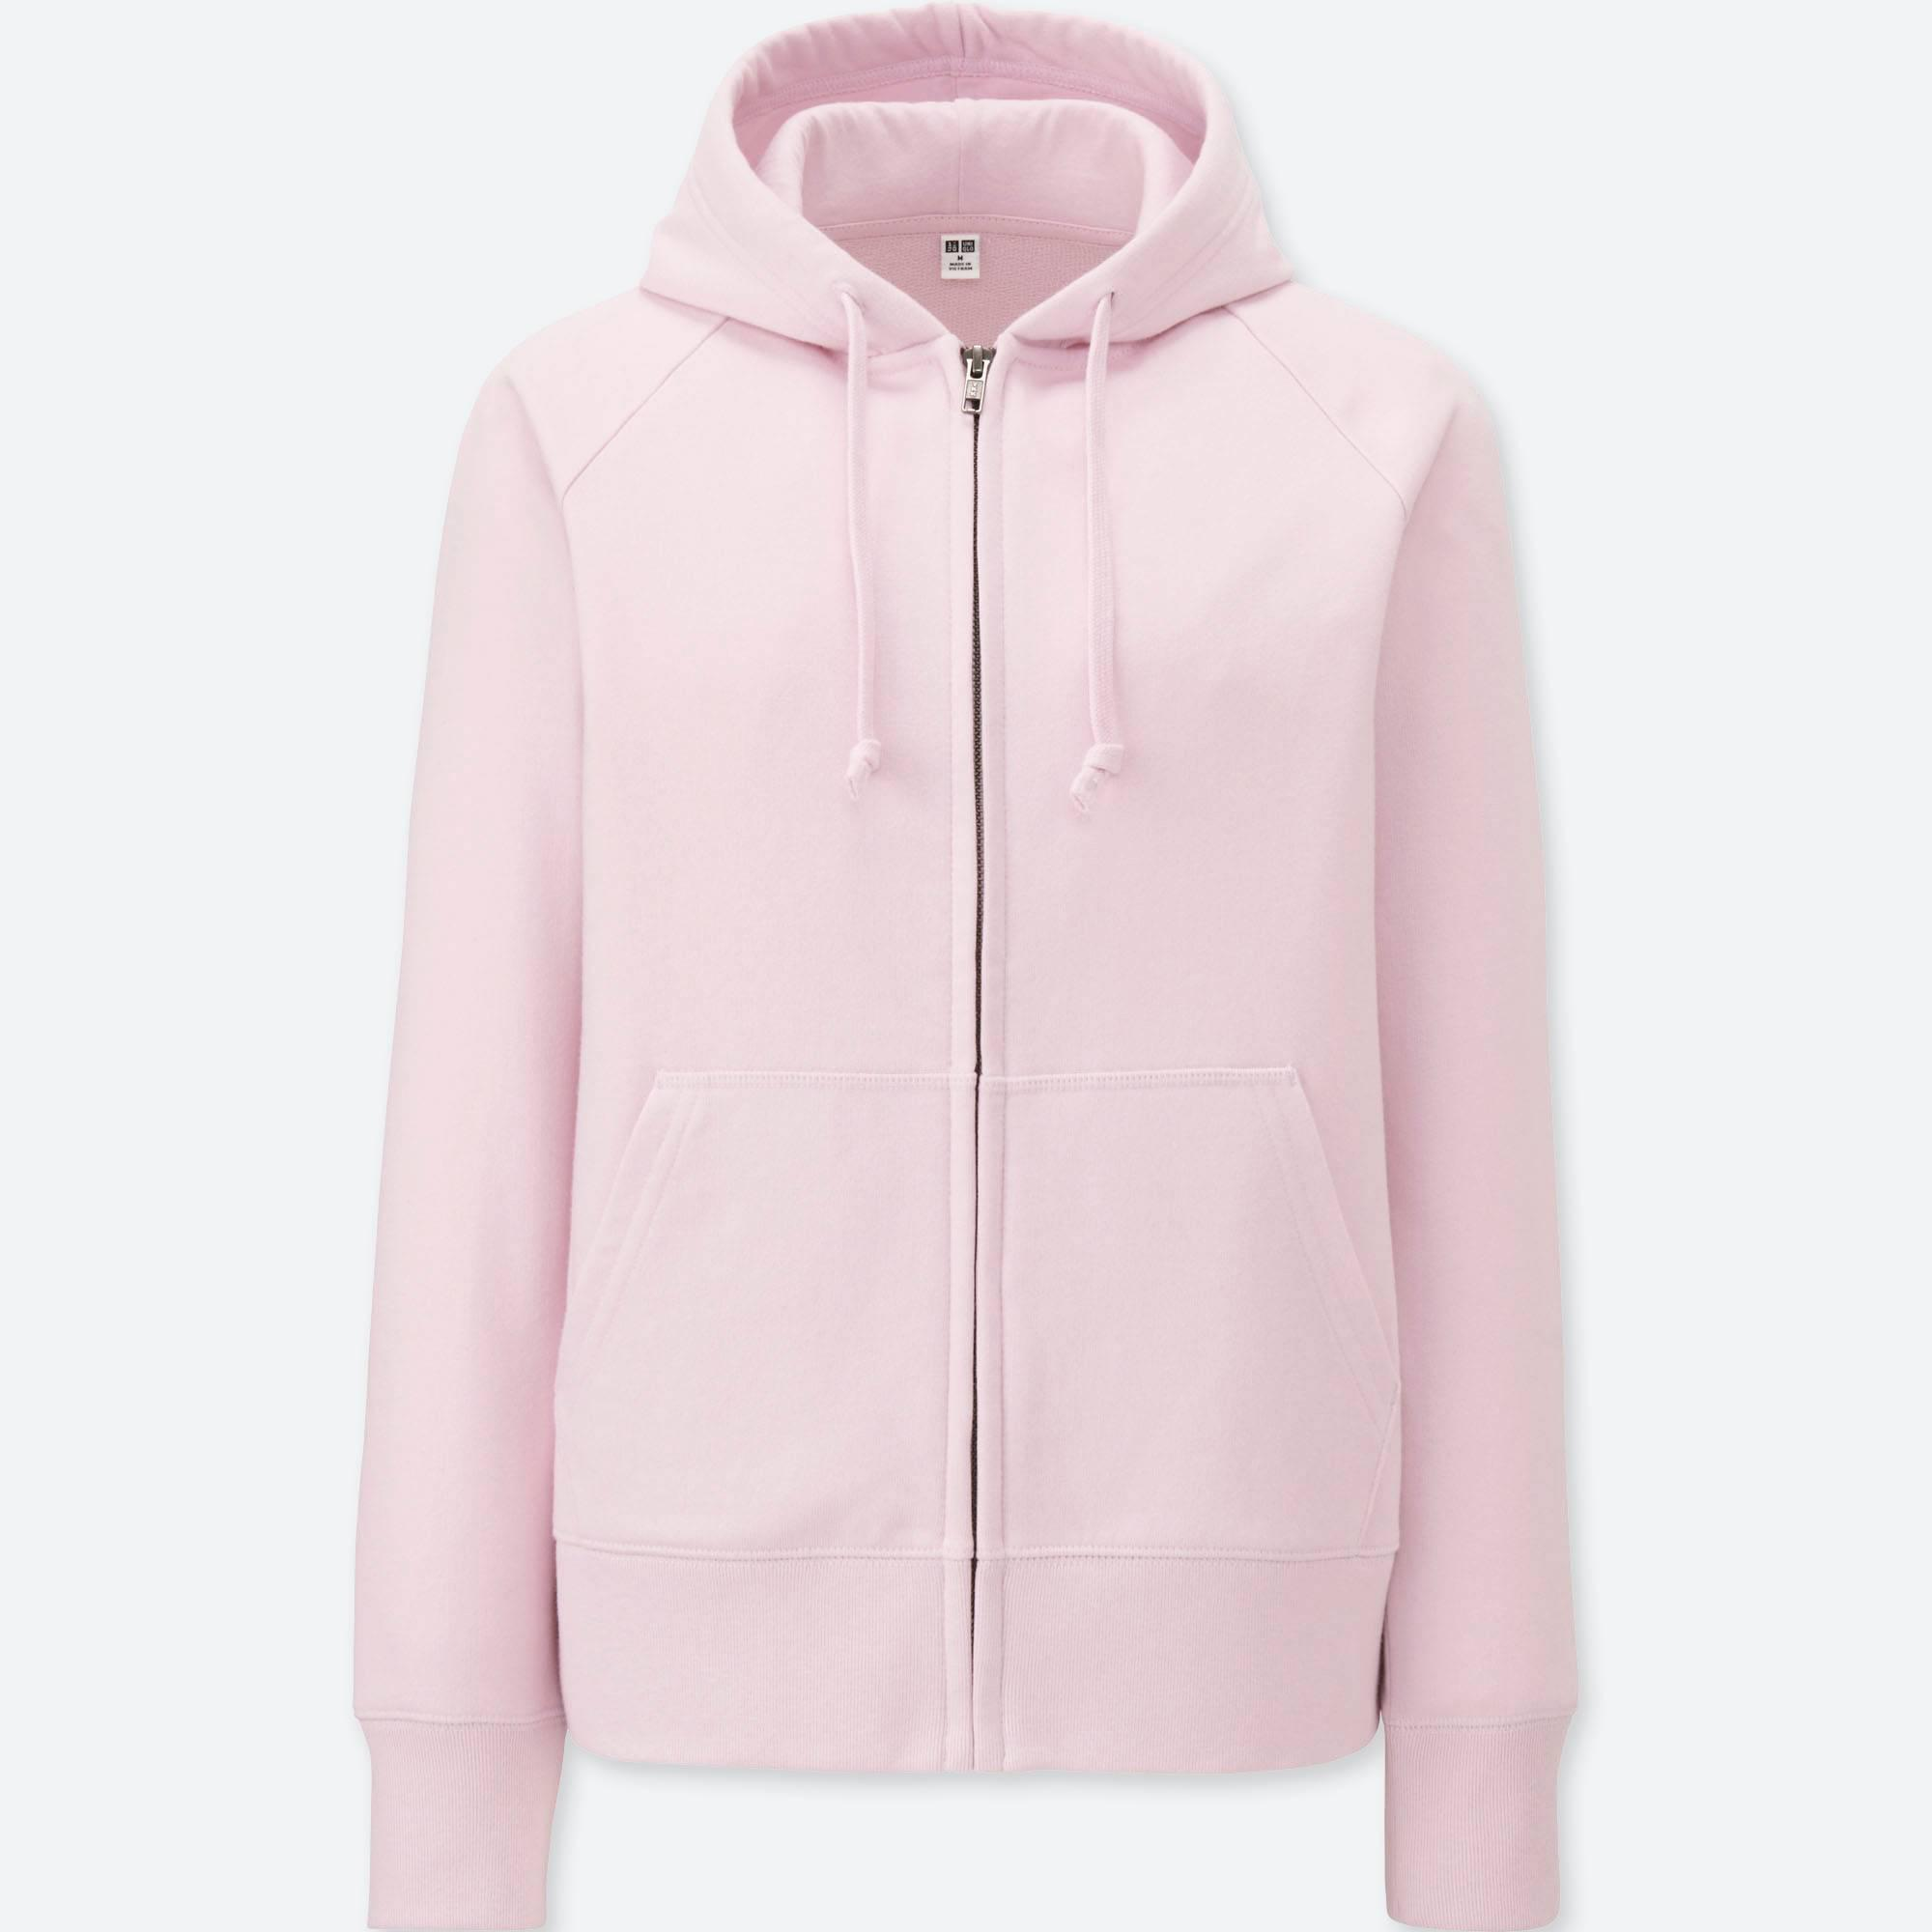 ae325a2e2d Lyst - Uniqlo Sweat Long Sleeved Zipped Hoodie in Pink